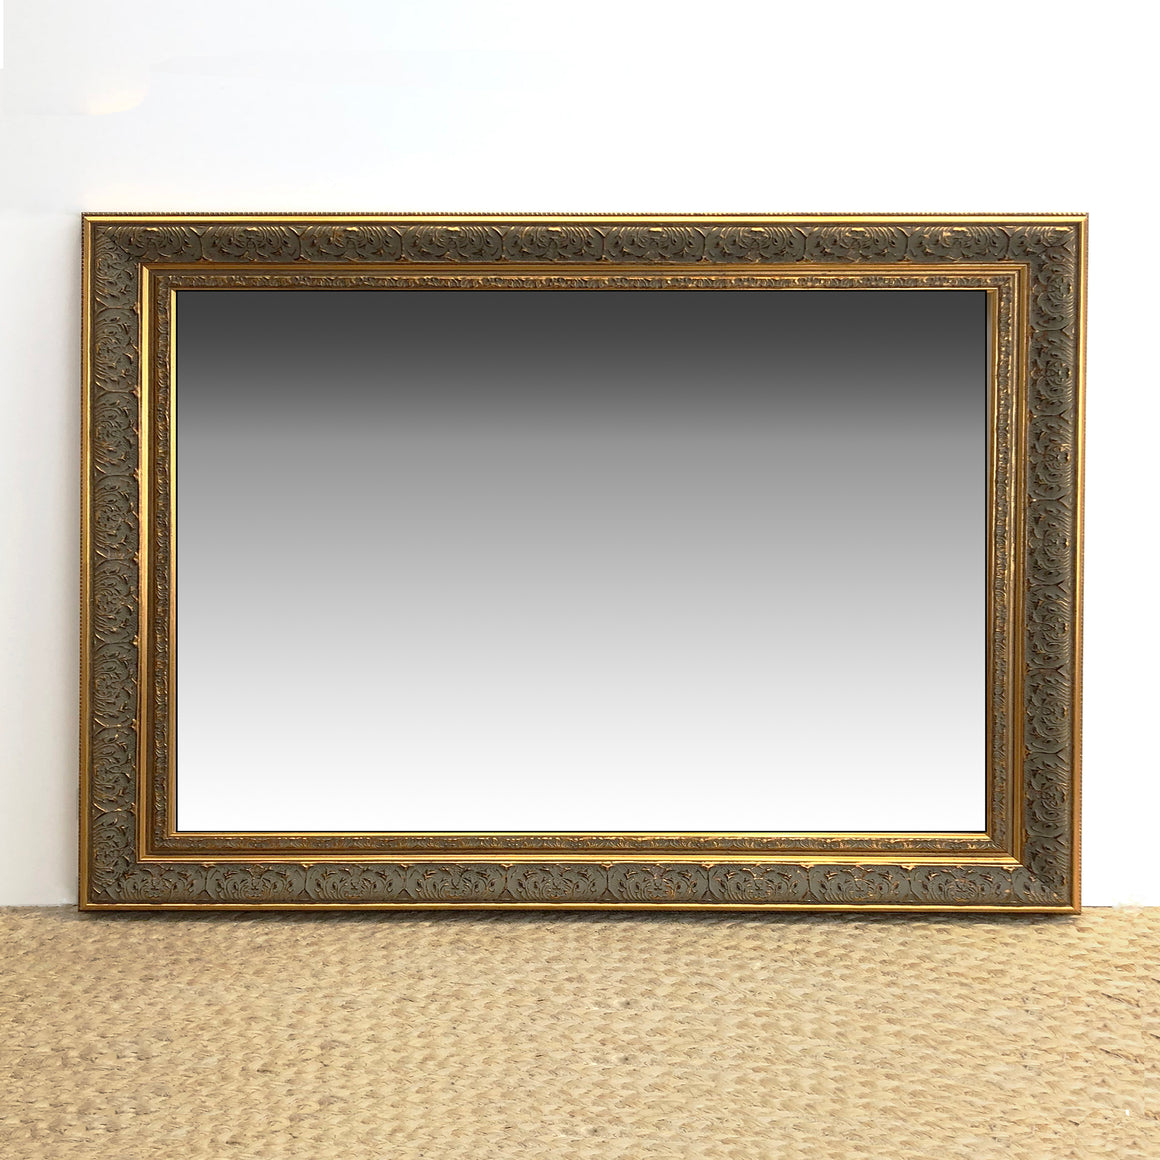 Framed Ornate Mirror 61x91cm